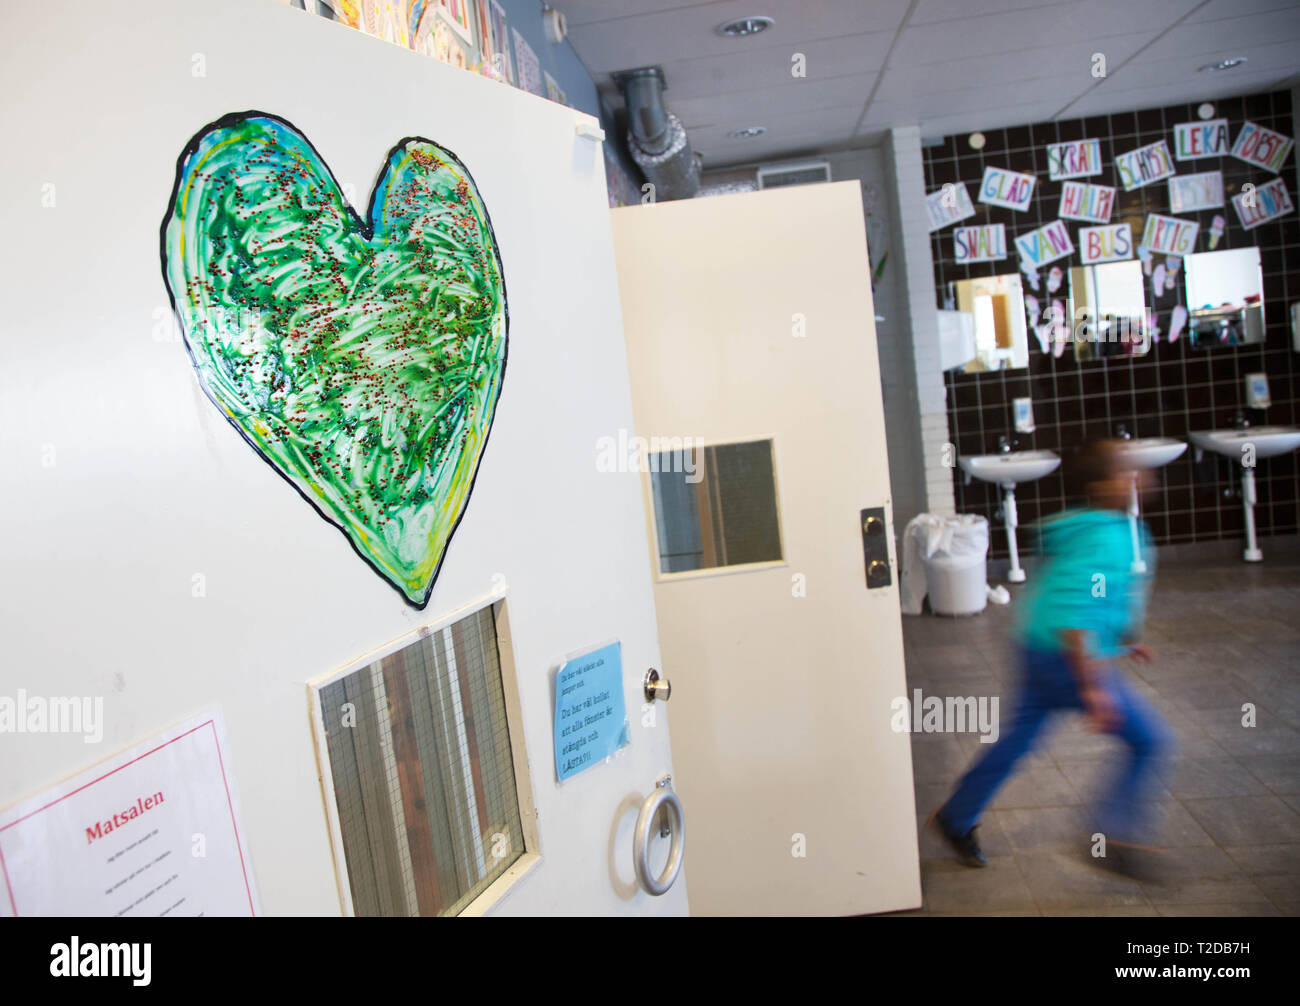 A painted heart in a school. - Stock Image